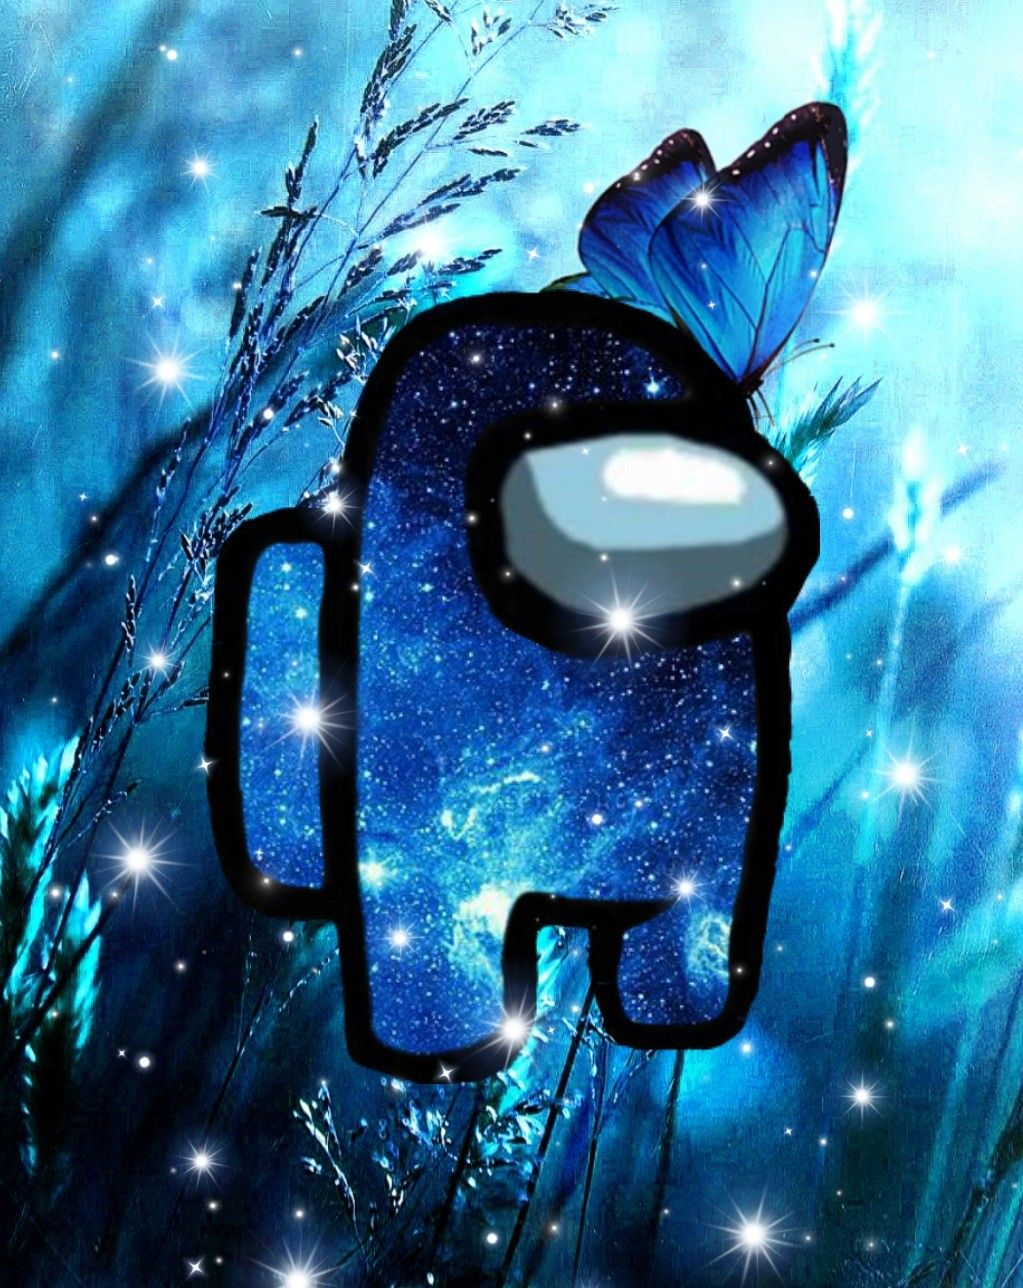 Among Us Blue In 2021 Wallpaper Iphone Cute Wallpaper Iphone Neon Cool Backgrounds Wallpapers